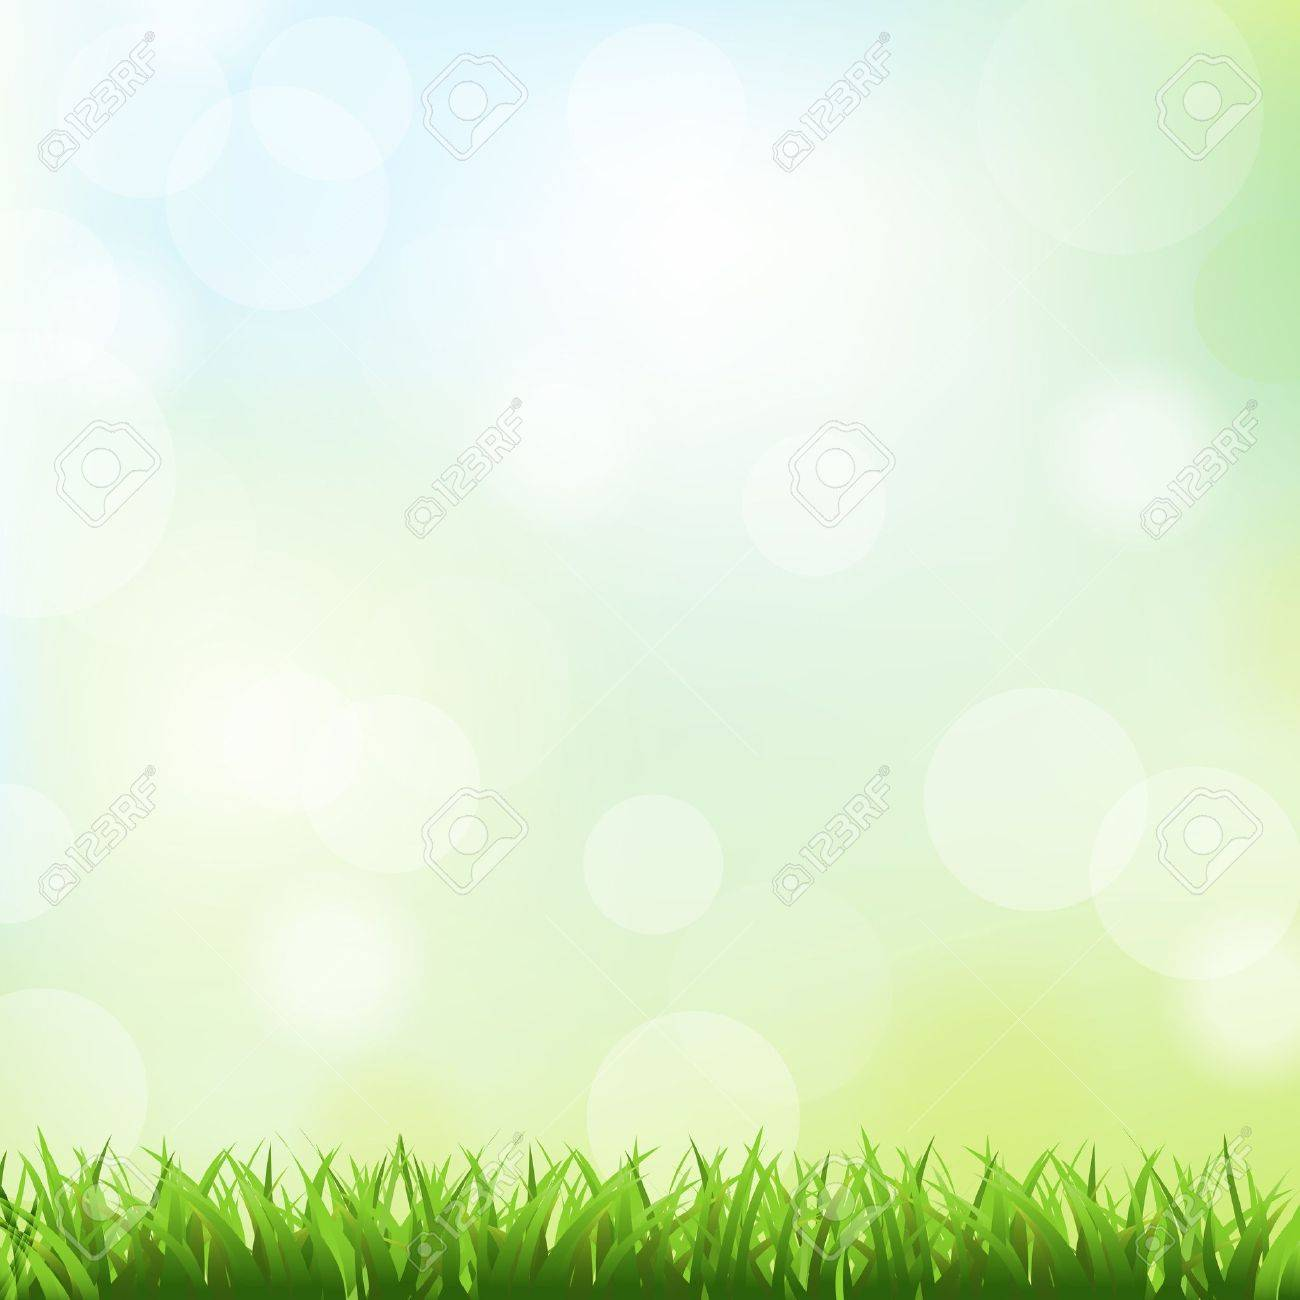 Green Grass And Spring Background,  Vector Illustration Stock Vector - 12285282